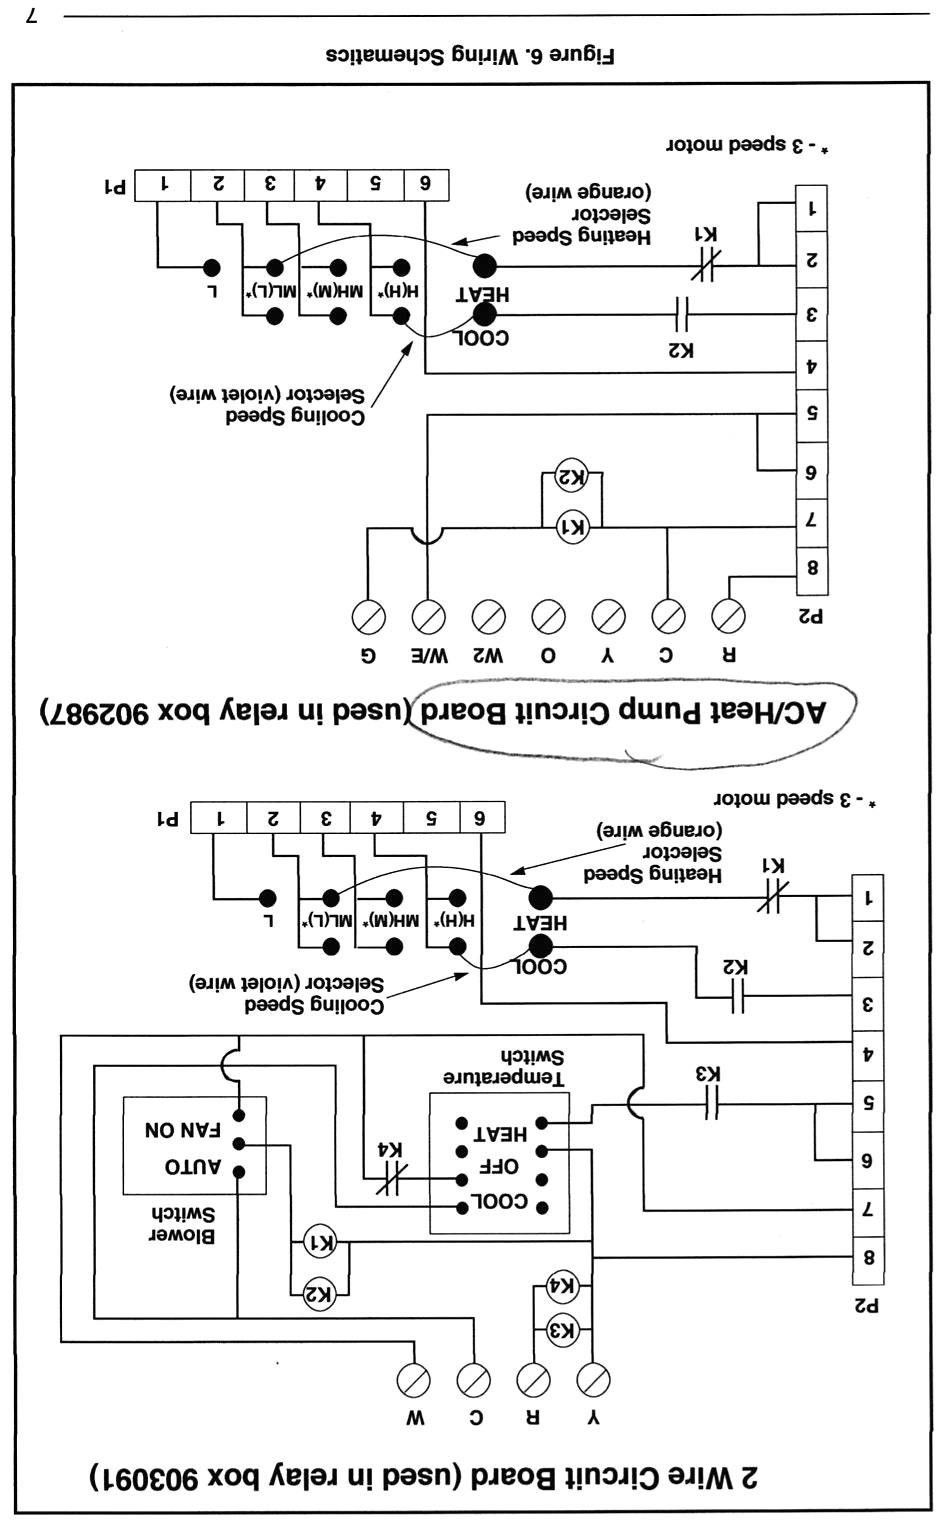 Awesome nordyne thermostat Wiring Diagram in 2020